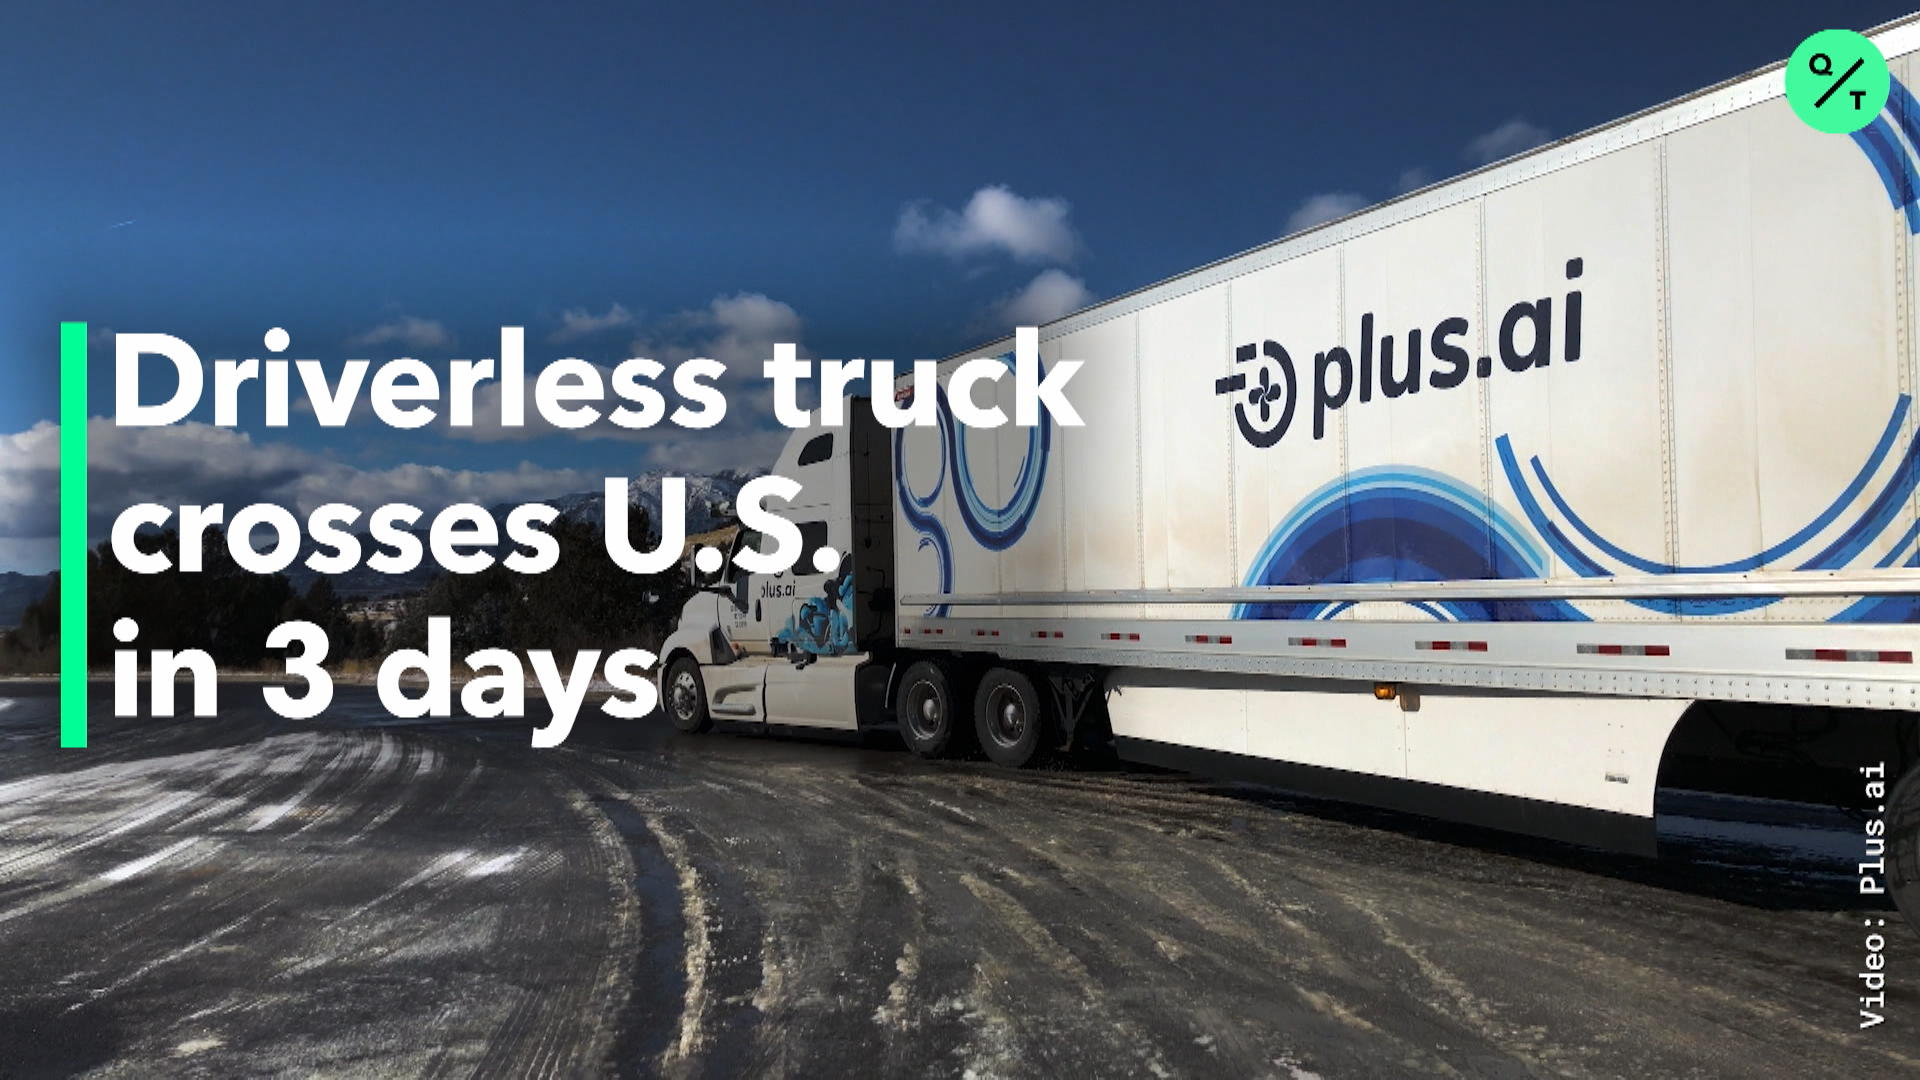 Driverless Truck Crosses US In 3 Days